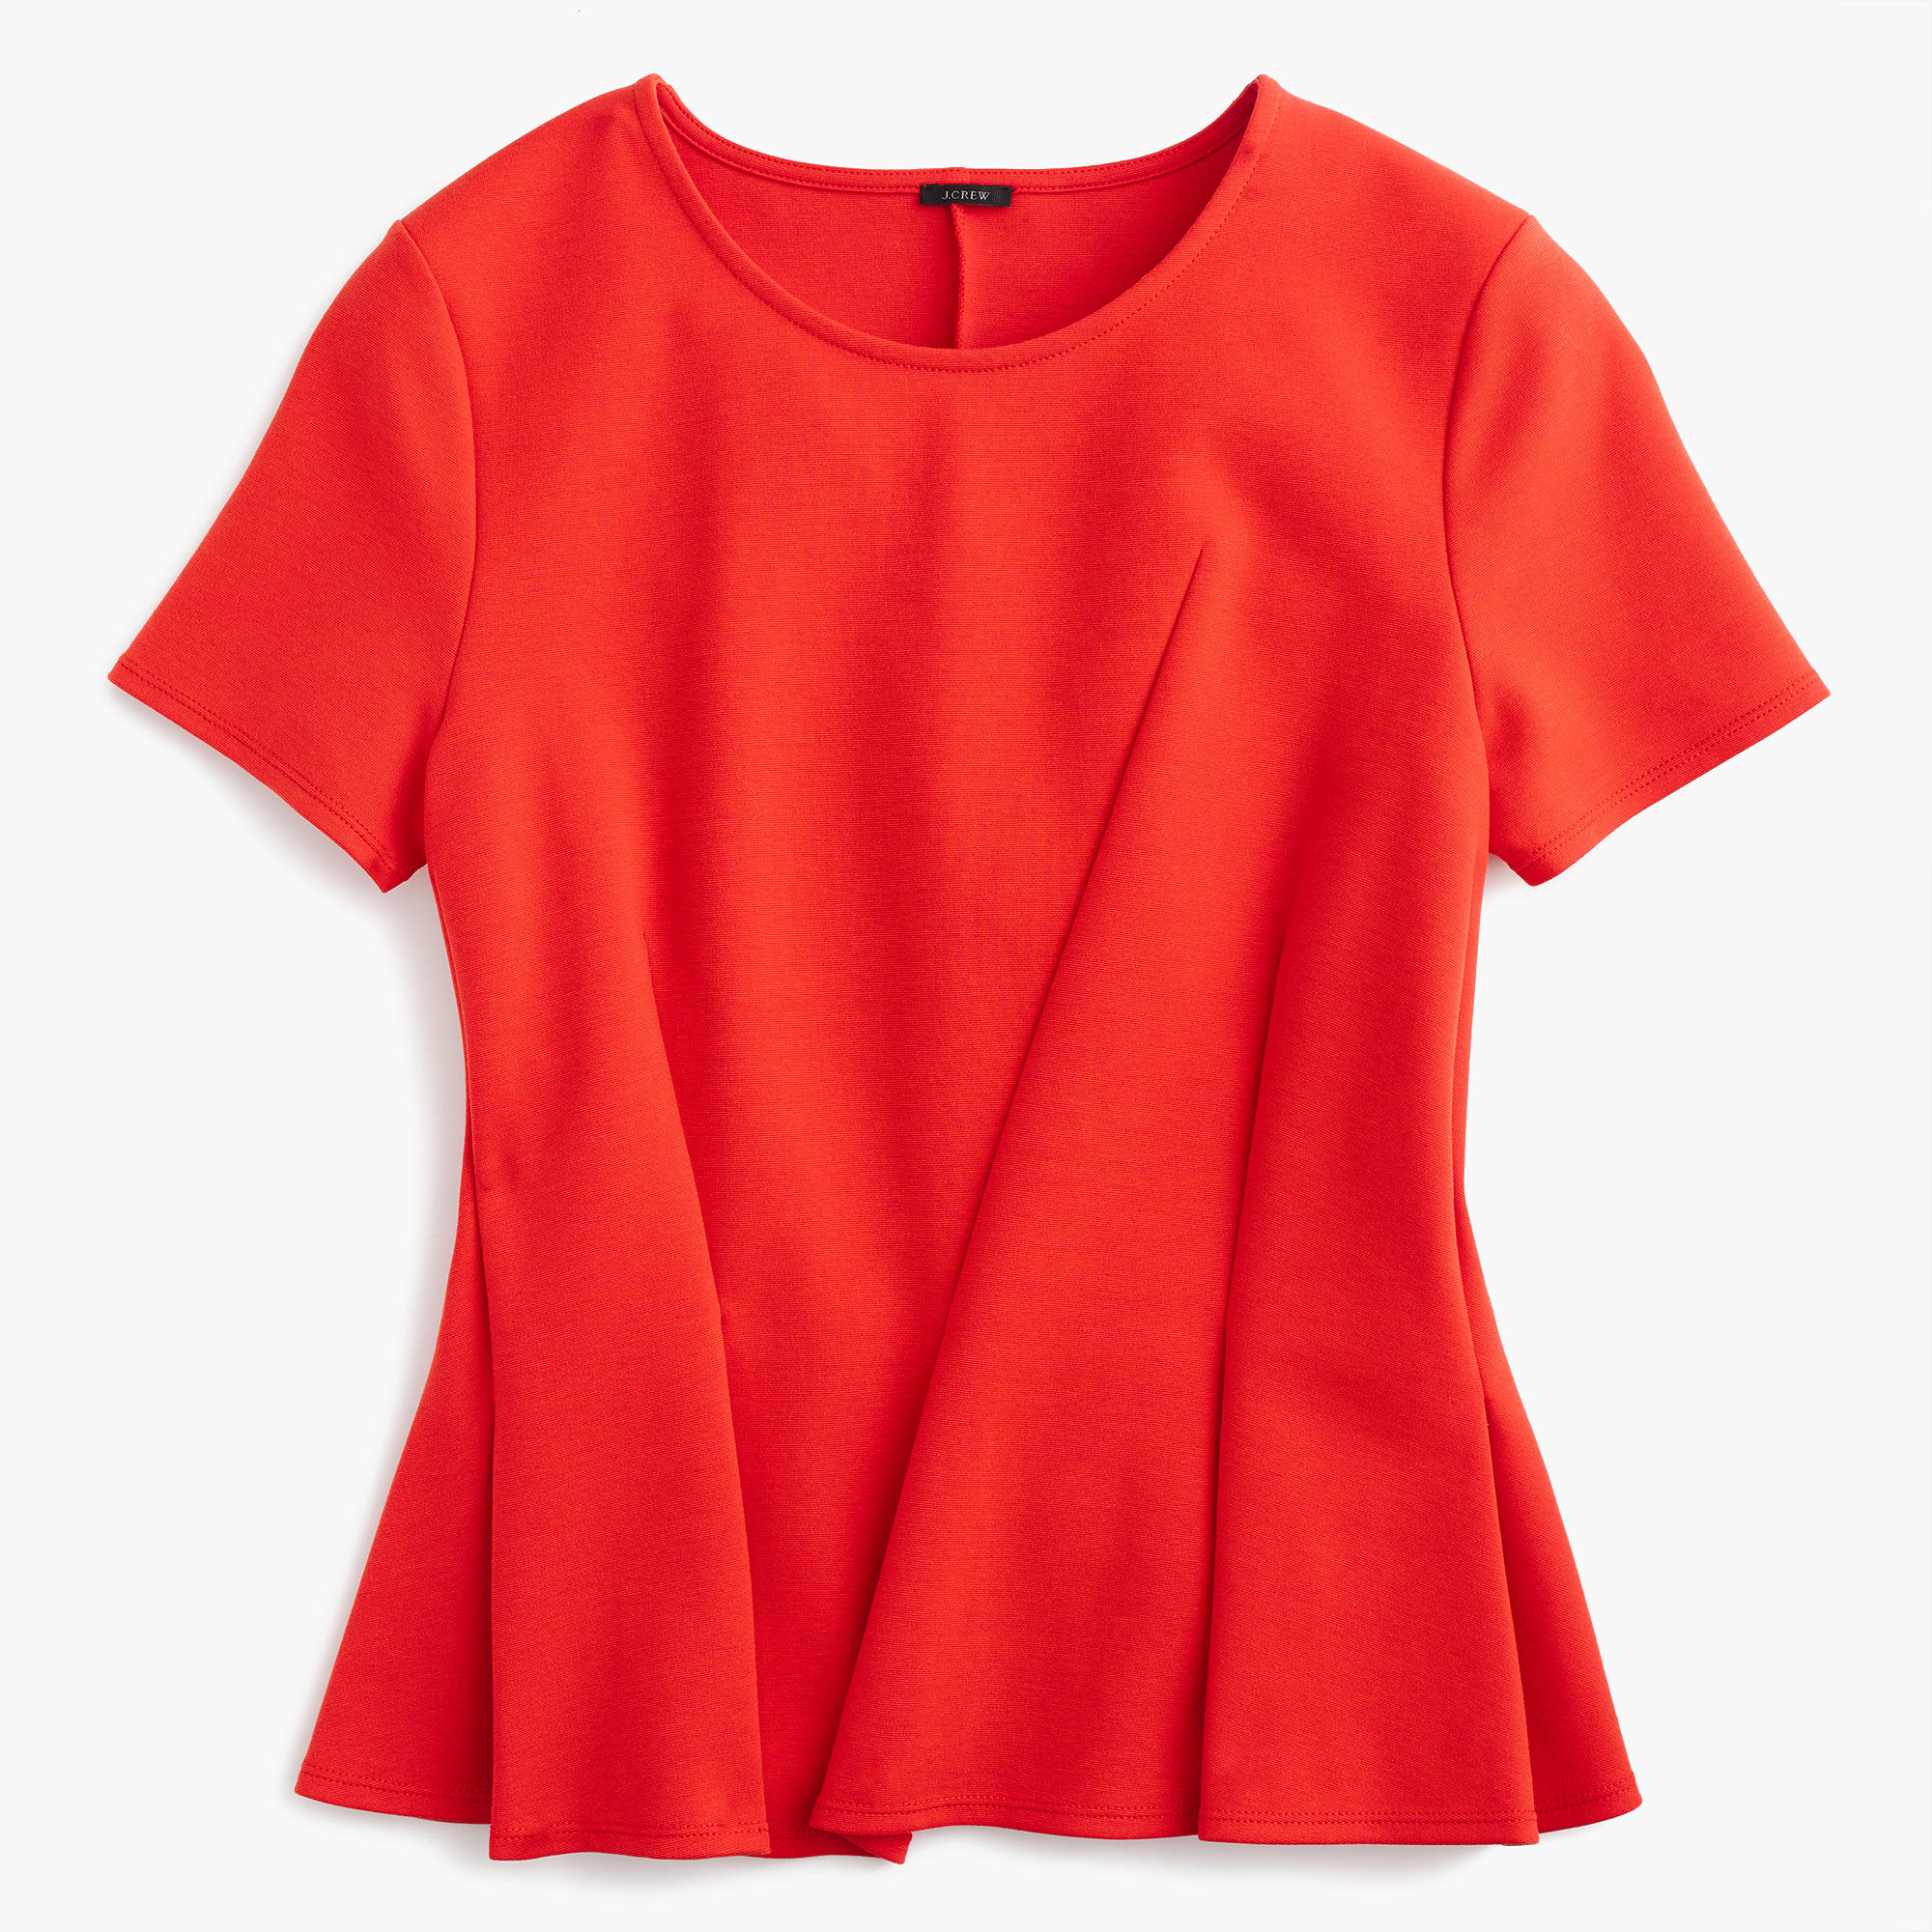 Asymmetrical Pleated Top Women Shirts Tops J Crew